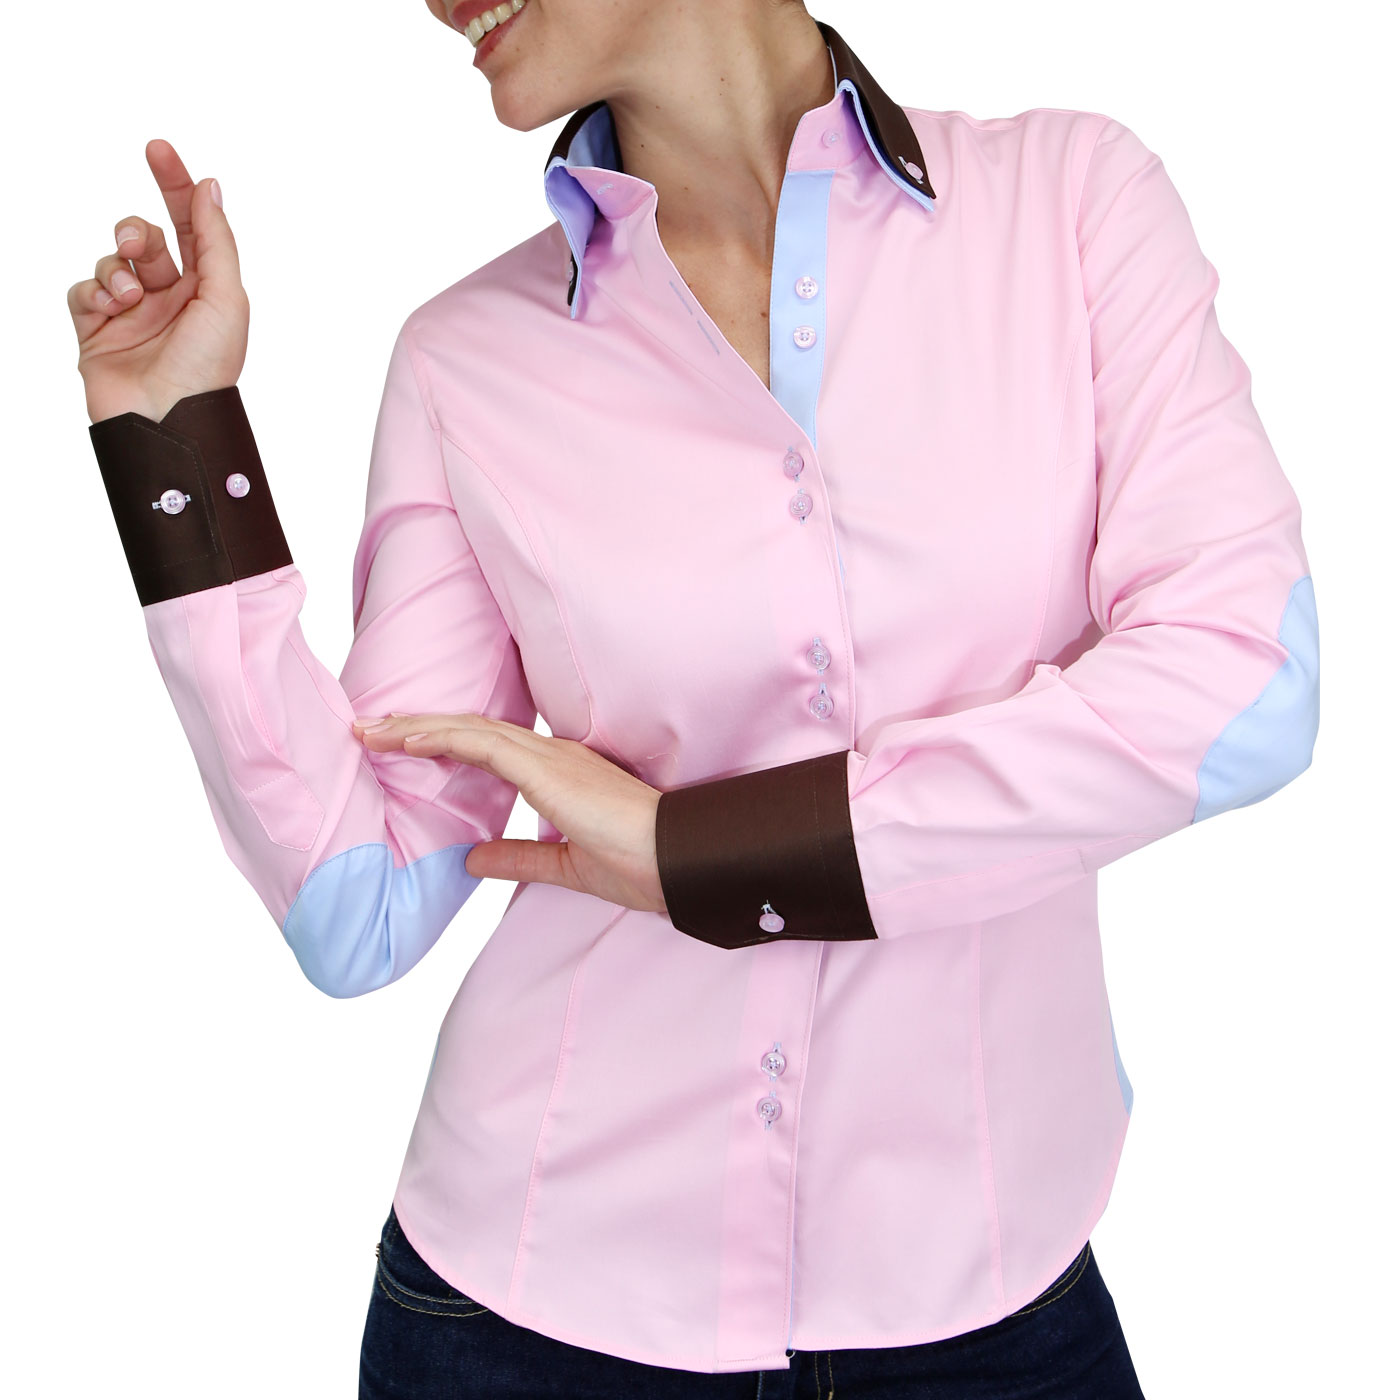 Women's Fashion Shirt Slim Fitted by Webmenshirts